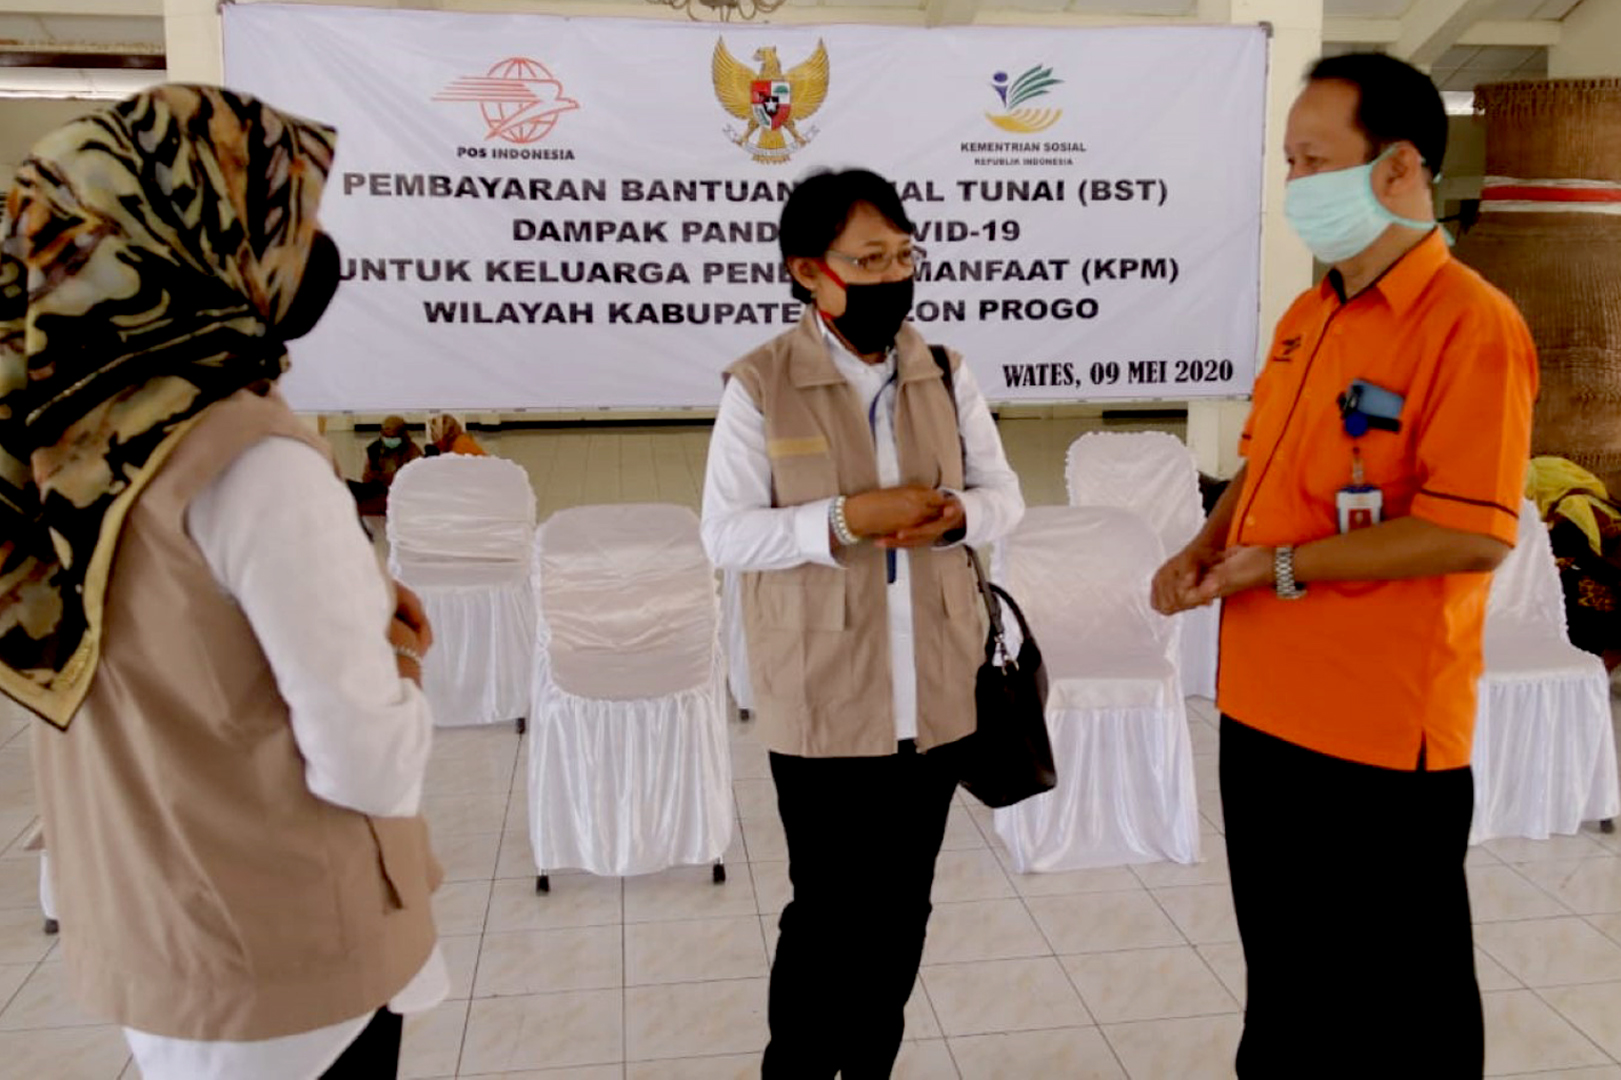 Yogyakarta BBPKS Monitor Bansos Distribution in Wates, Kulon Progo